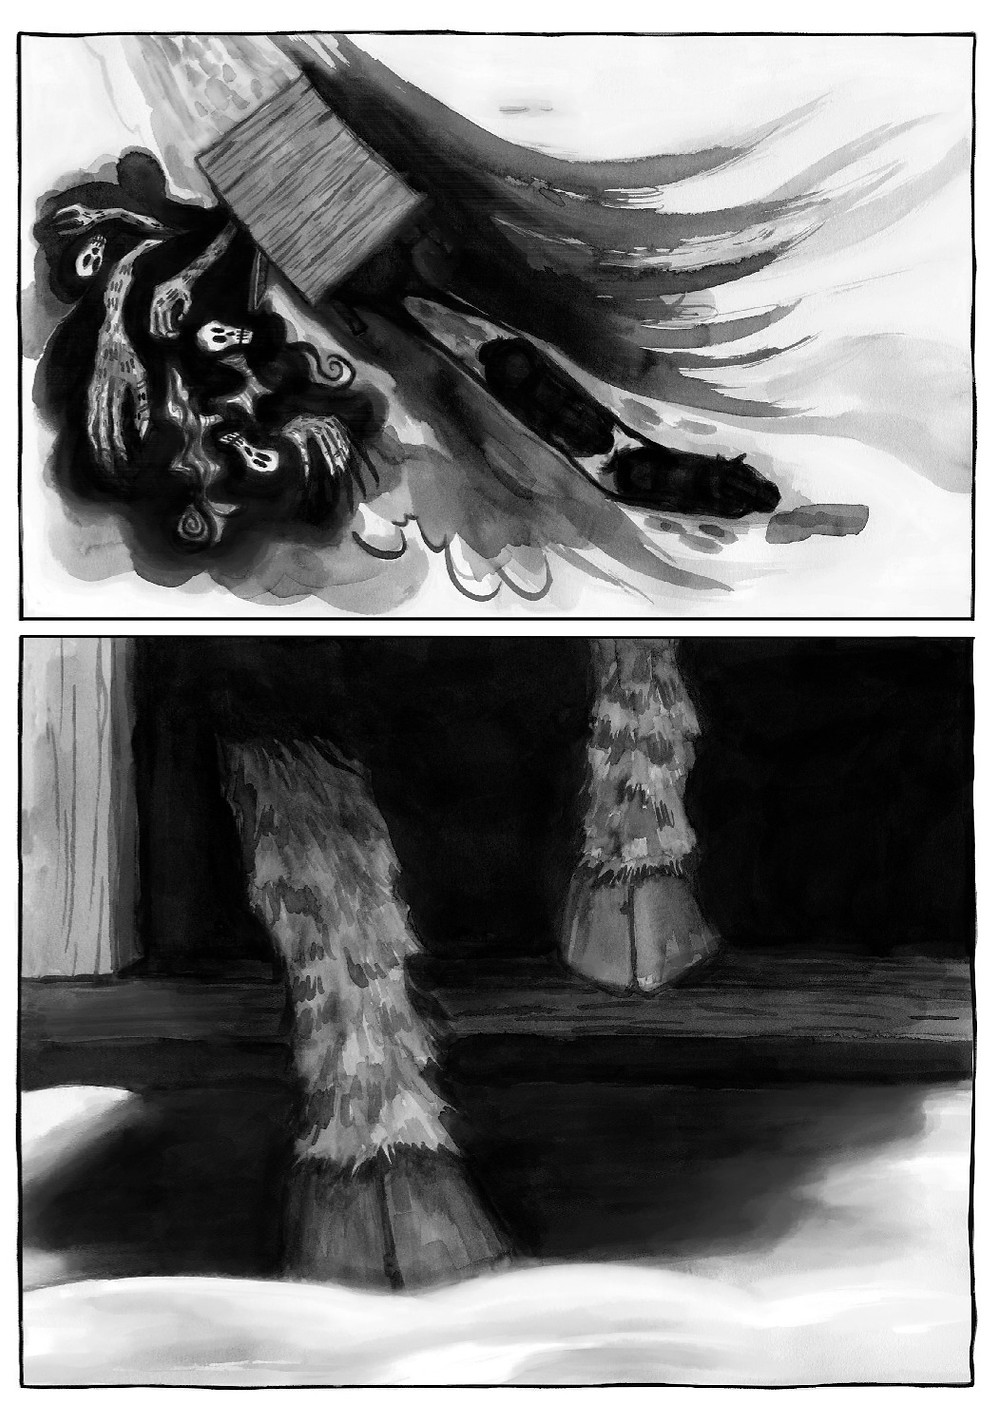 Bloodsucker, one-shot, page 16, self-published, Vartiainen